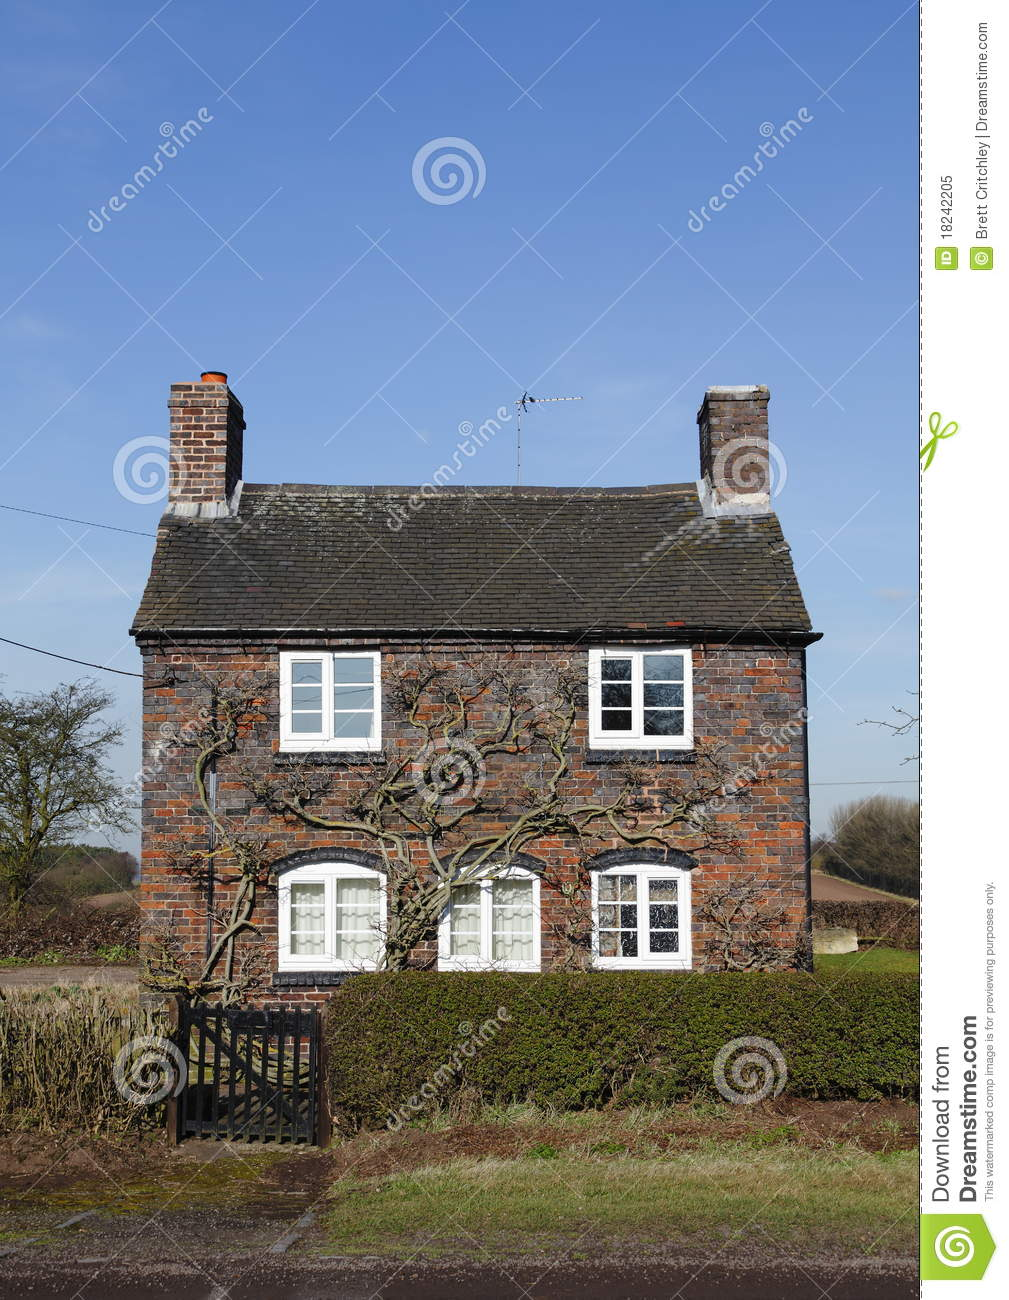 Petite maison anglaise traditionnelle photo libre de droits image 18242205 - Photo maison anglaise ...